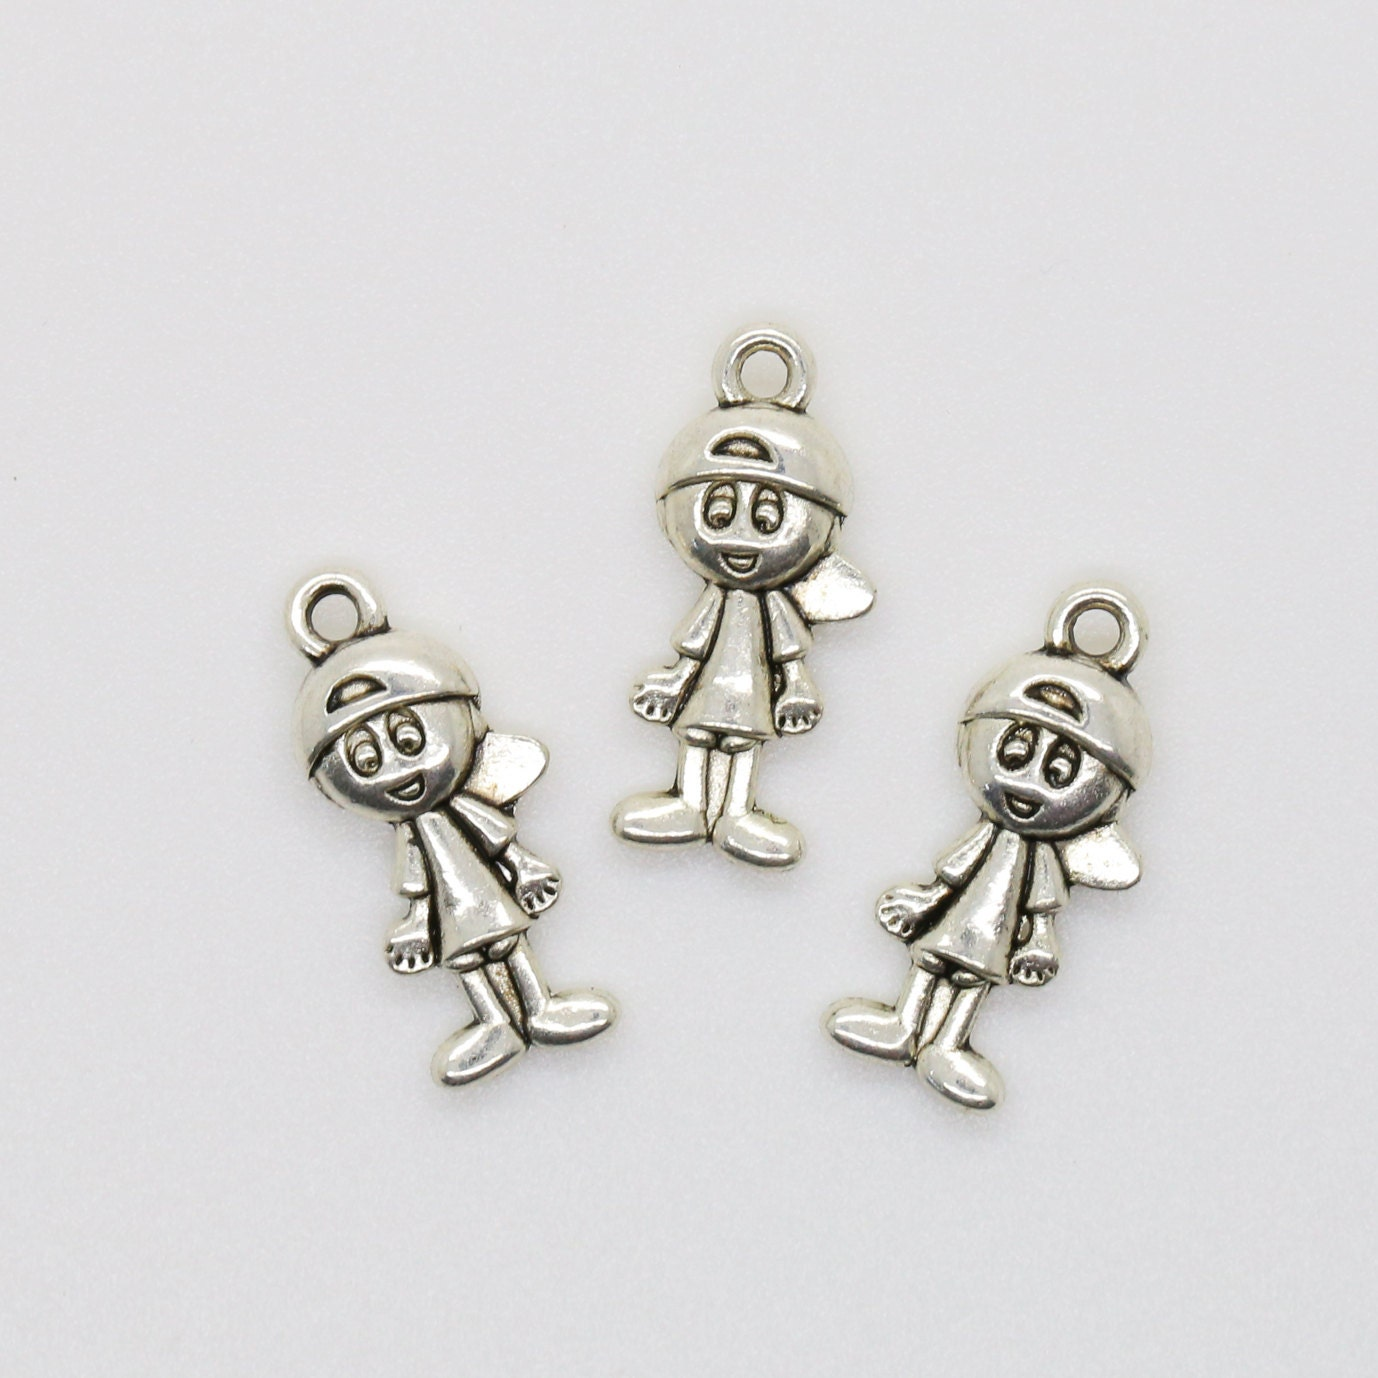 3 antique silver boy charm 3d boy pendant diy jewelry